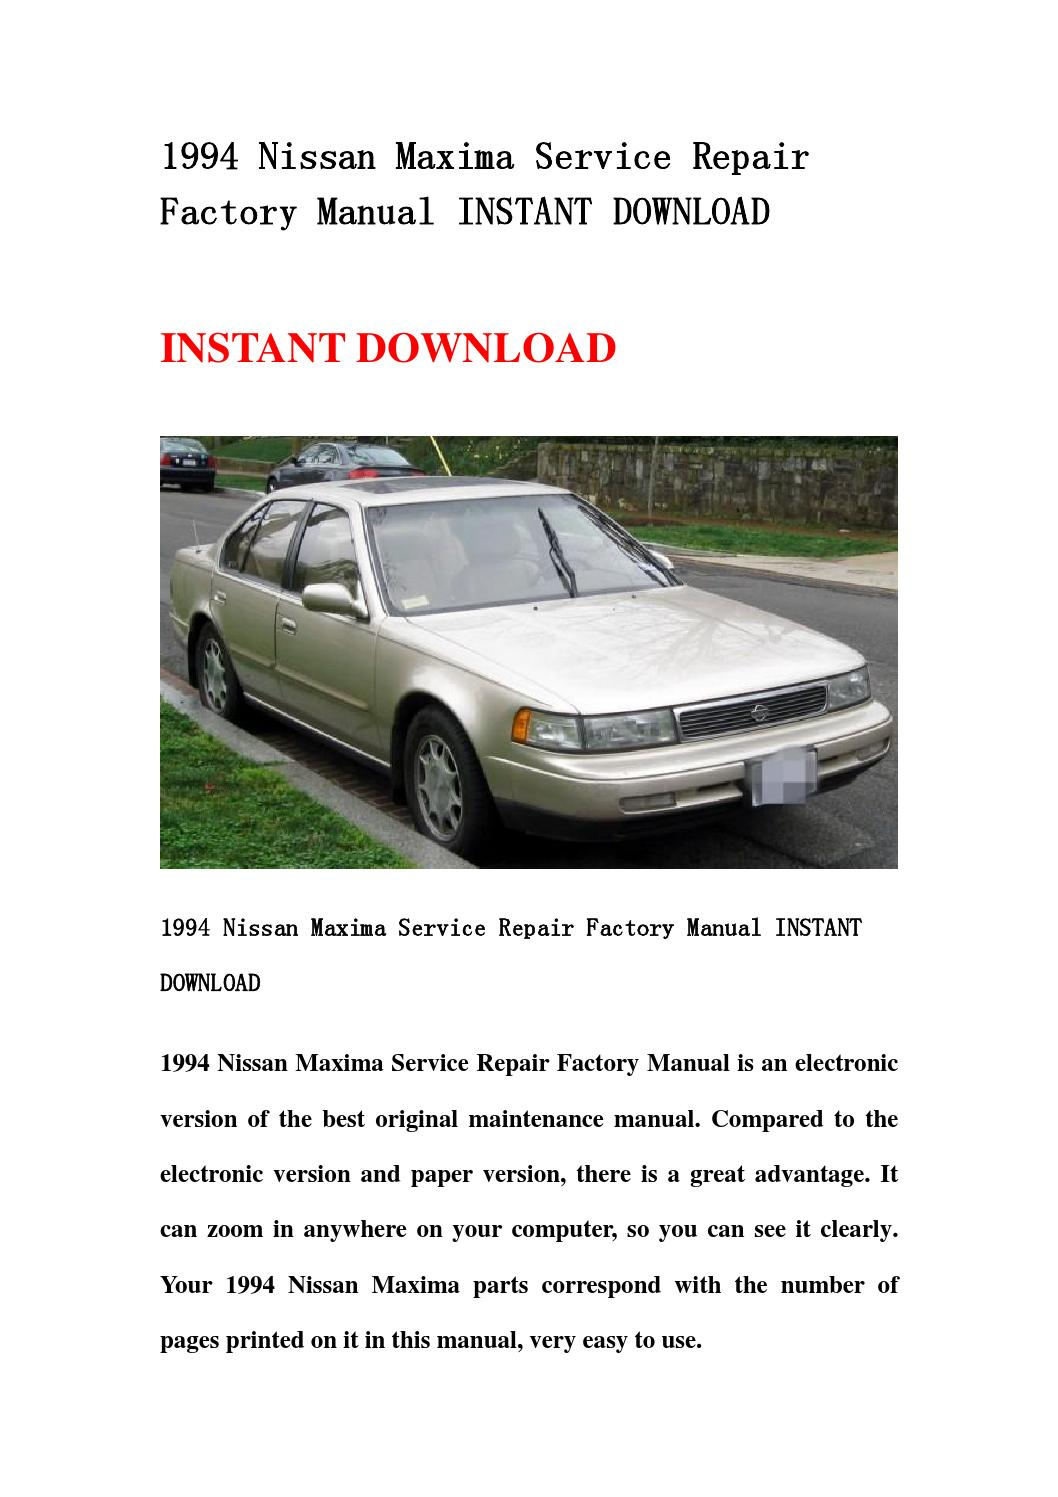 2000 nissan maxima repair manual download